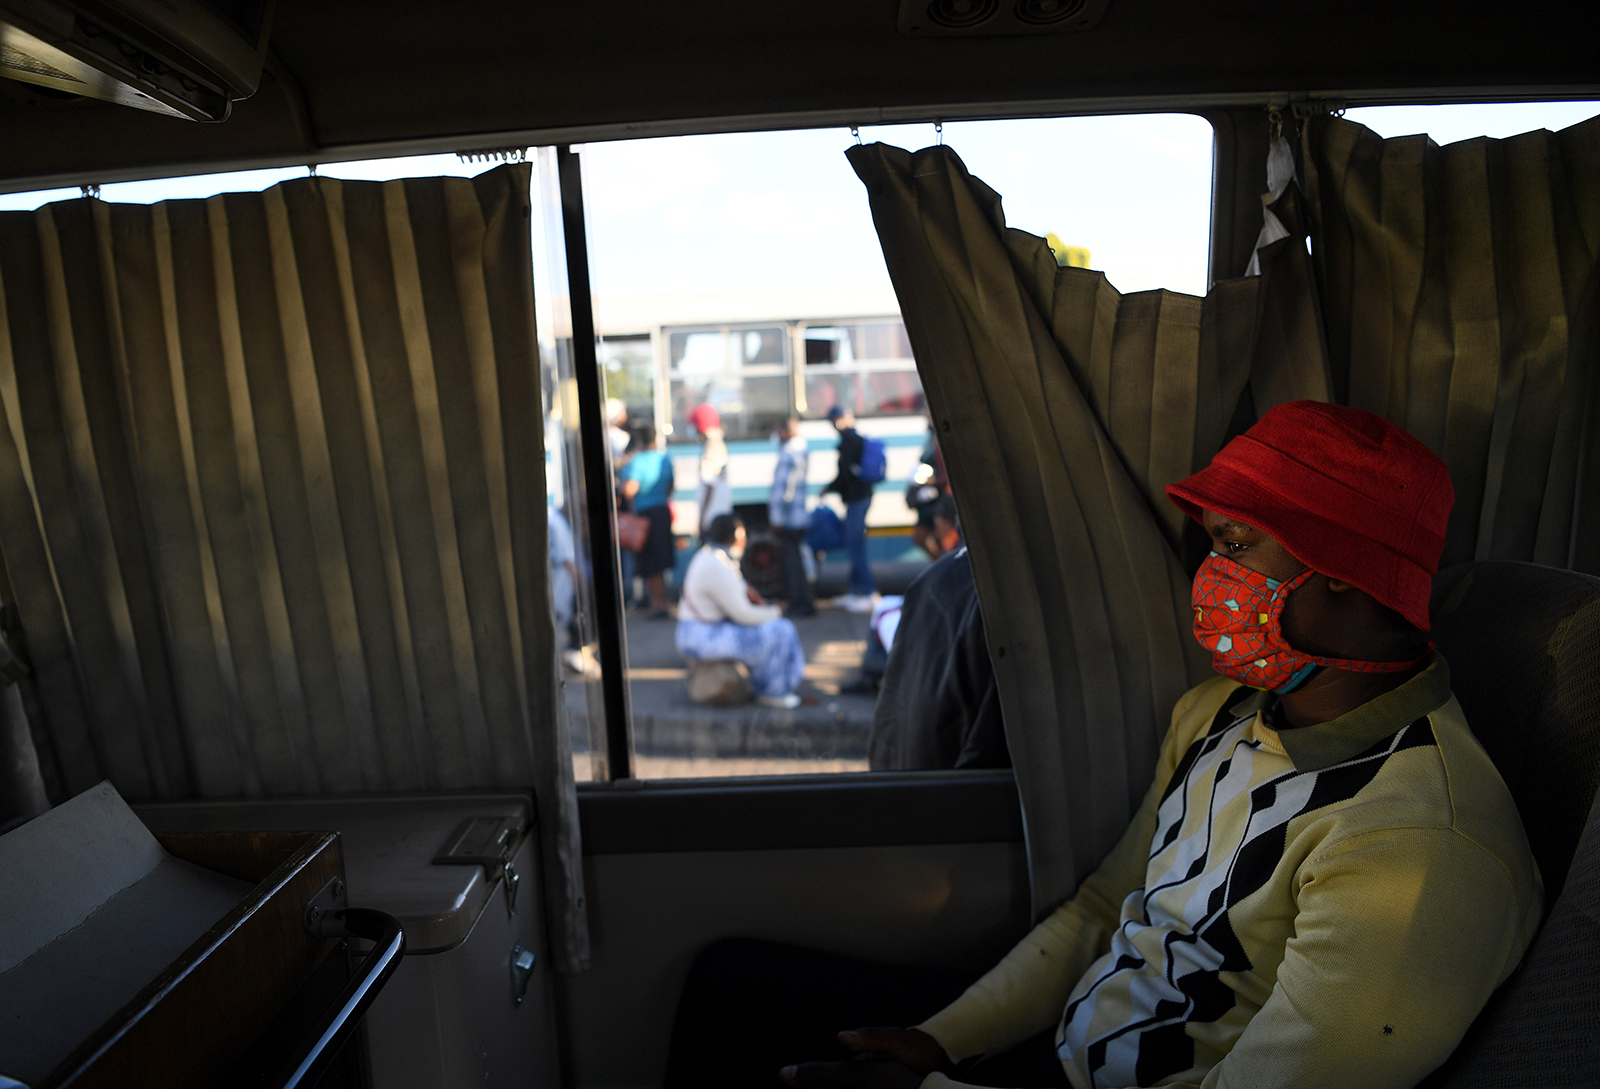 A commuter wears a face mask on a bus in Gaborone, Botswana on May 21.